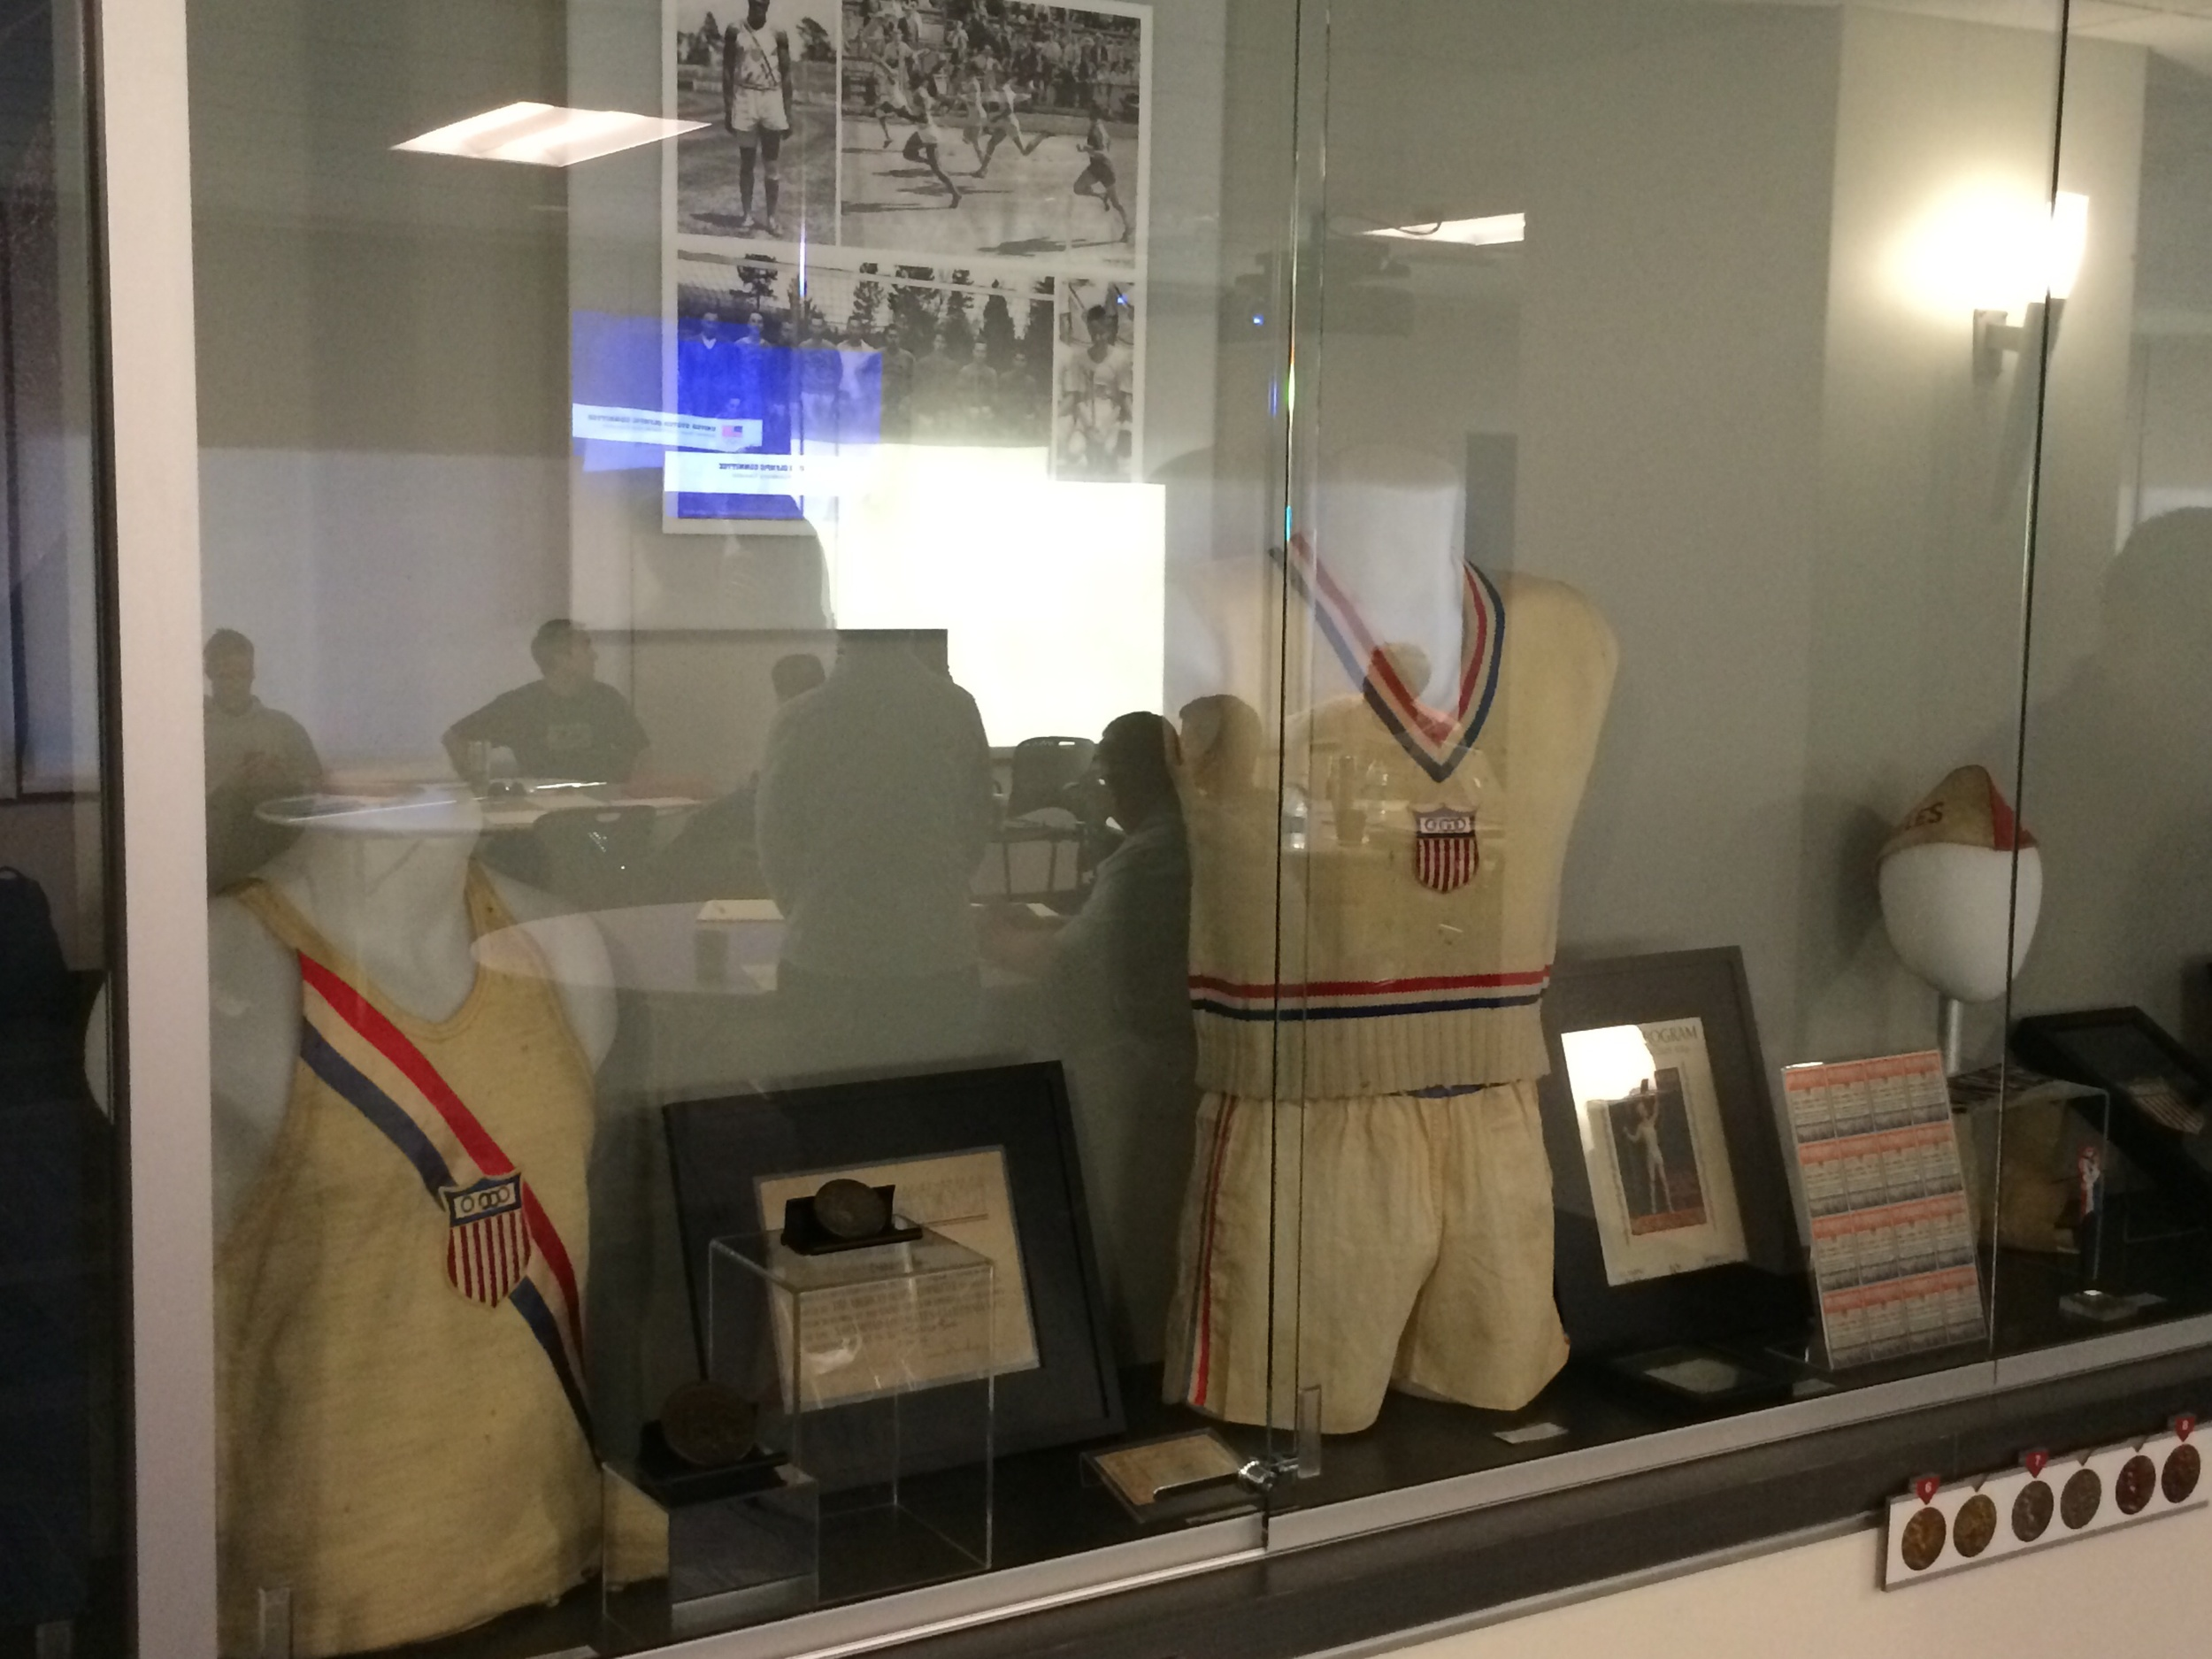 Some history - 1932 uniforms